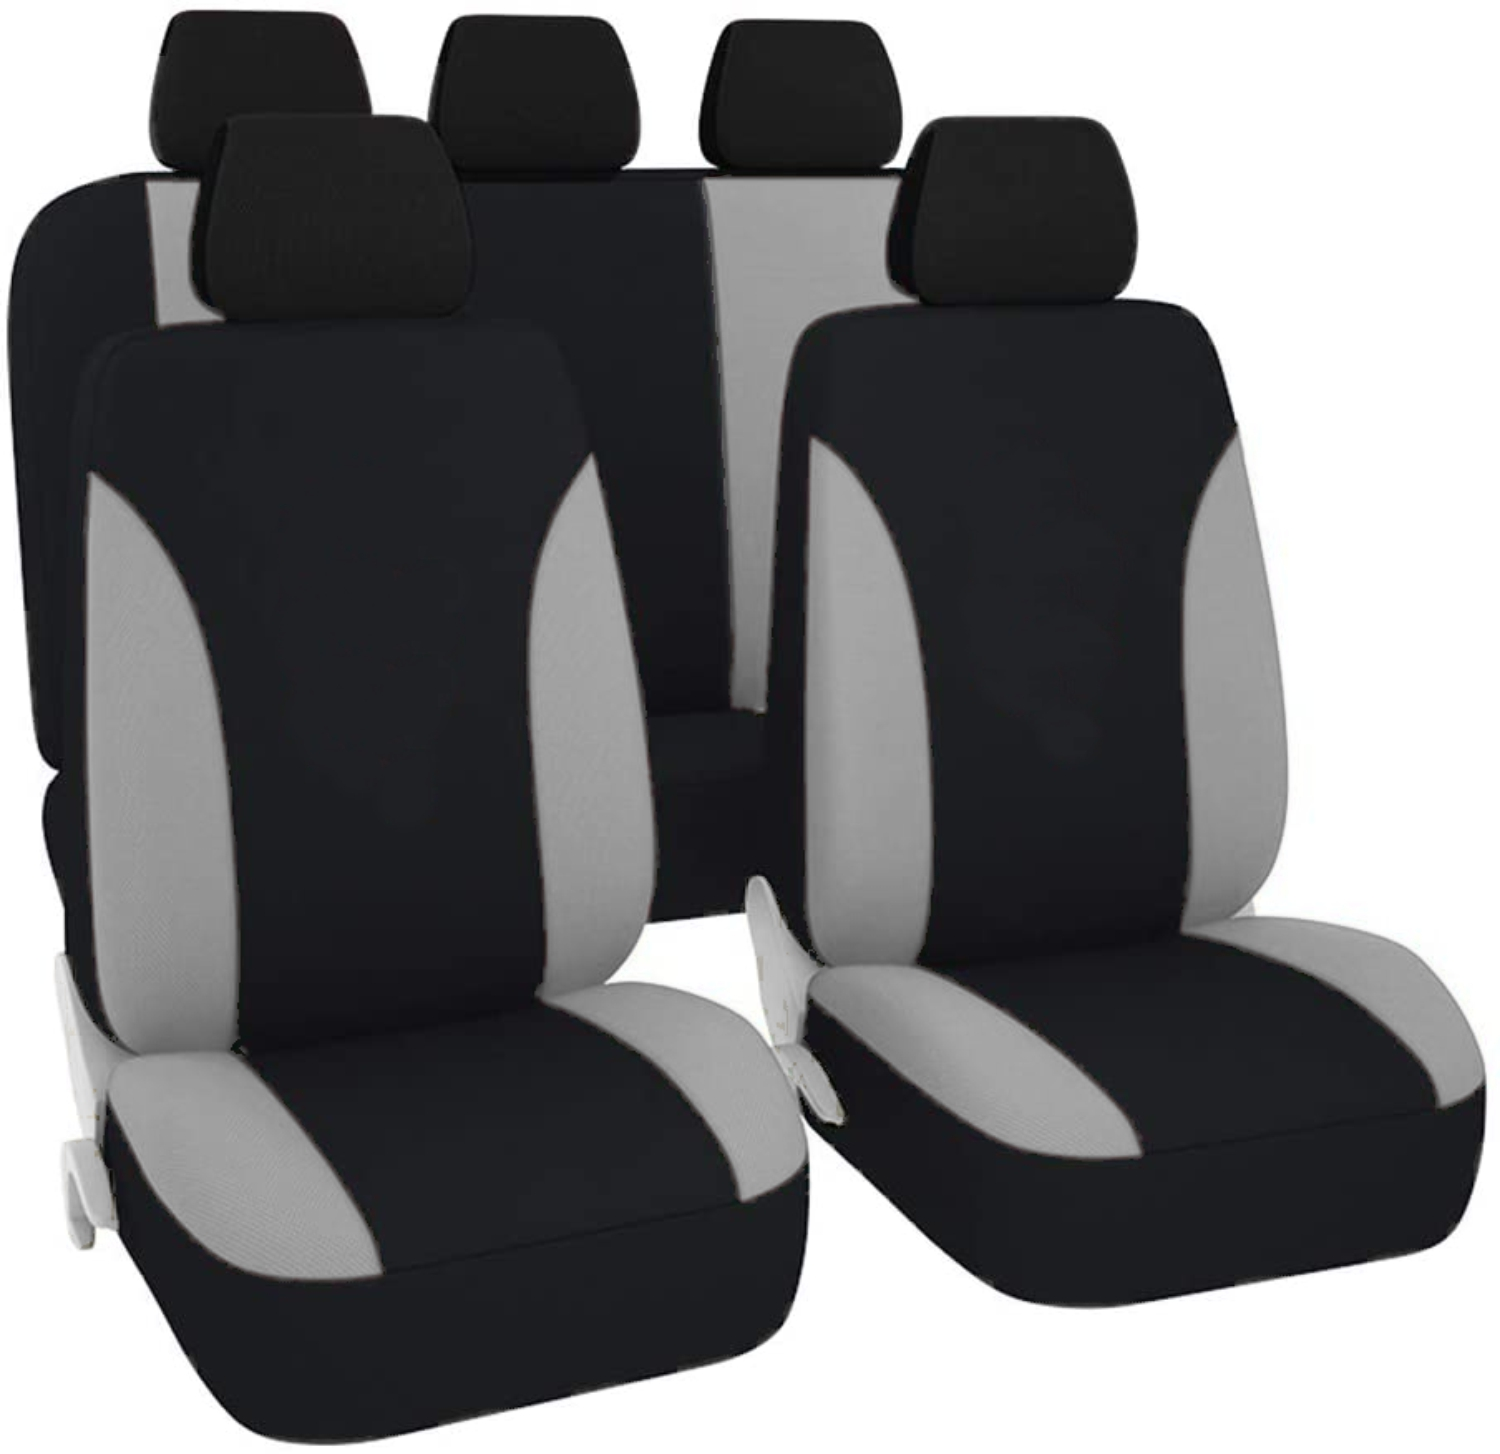 SB101 - Car Seat Cover set protector with SIDE AIRBAG BLACK / GREY